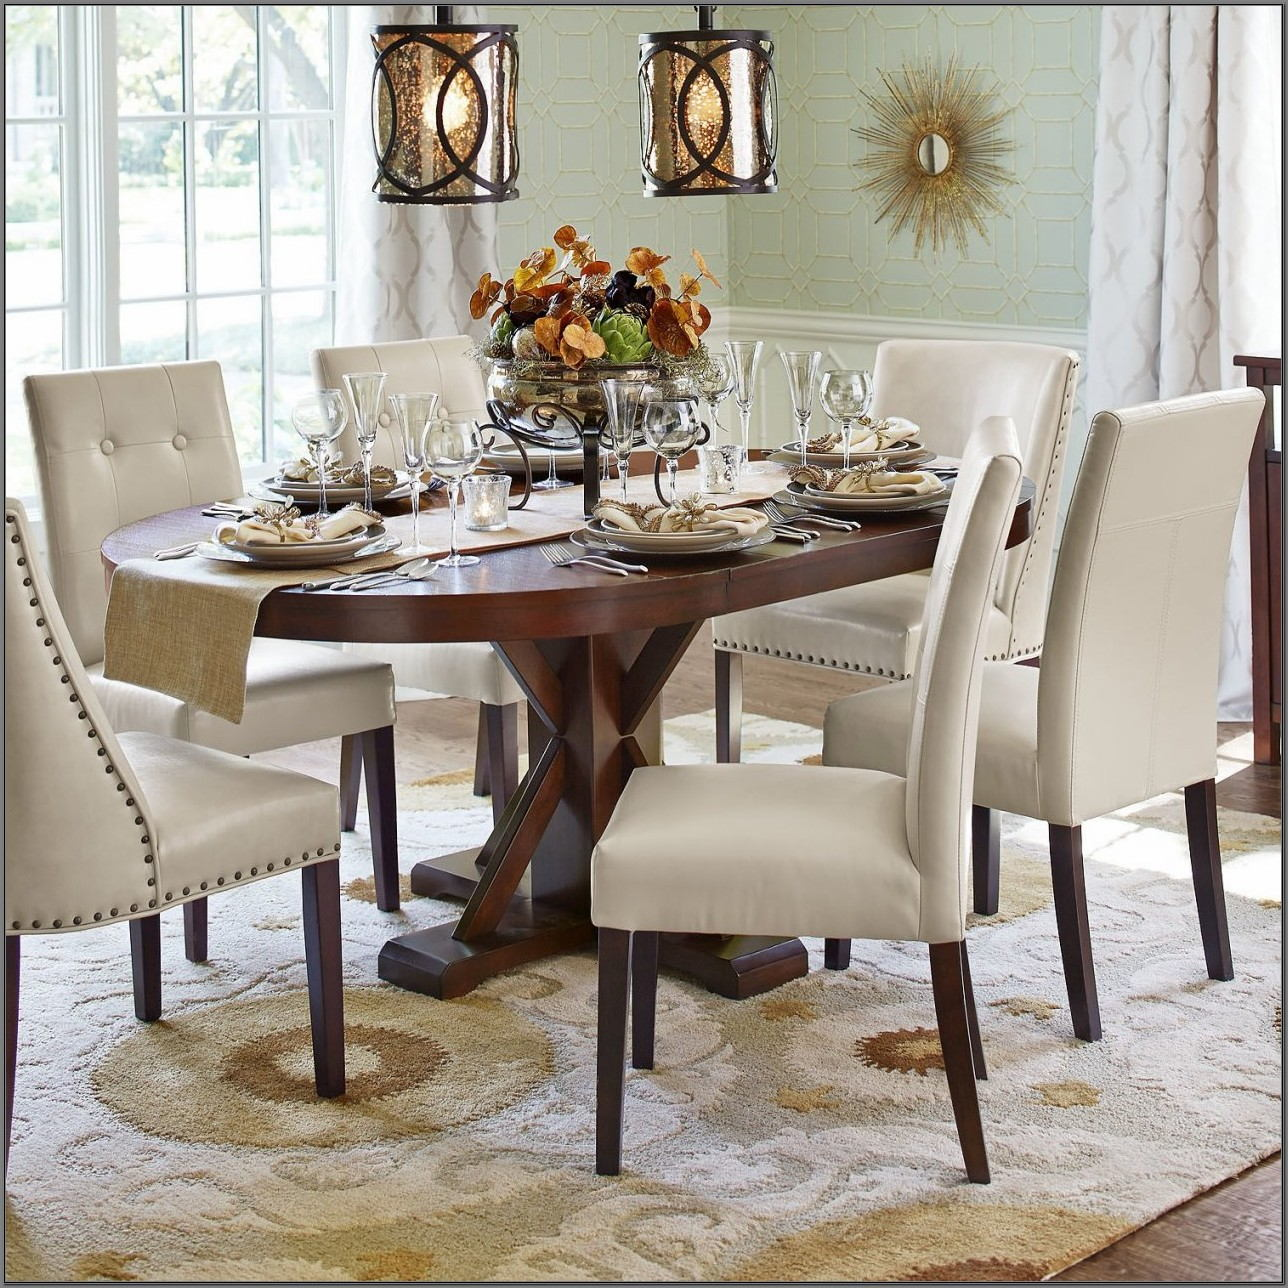 Pier 1 Dining Room Ideas